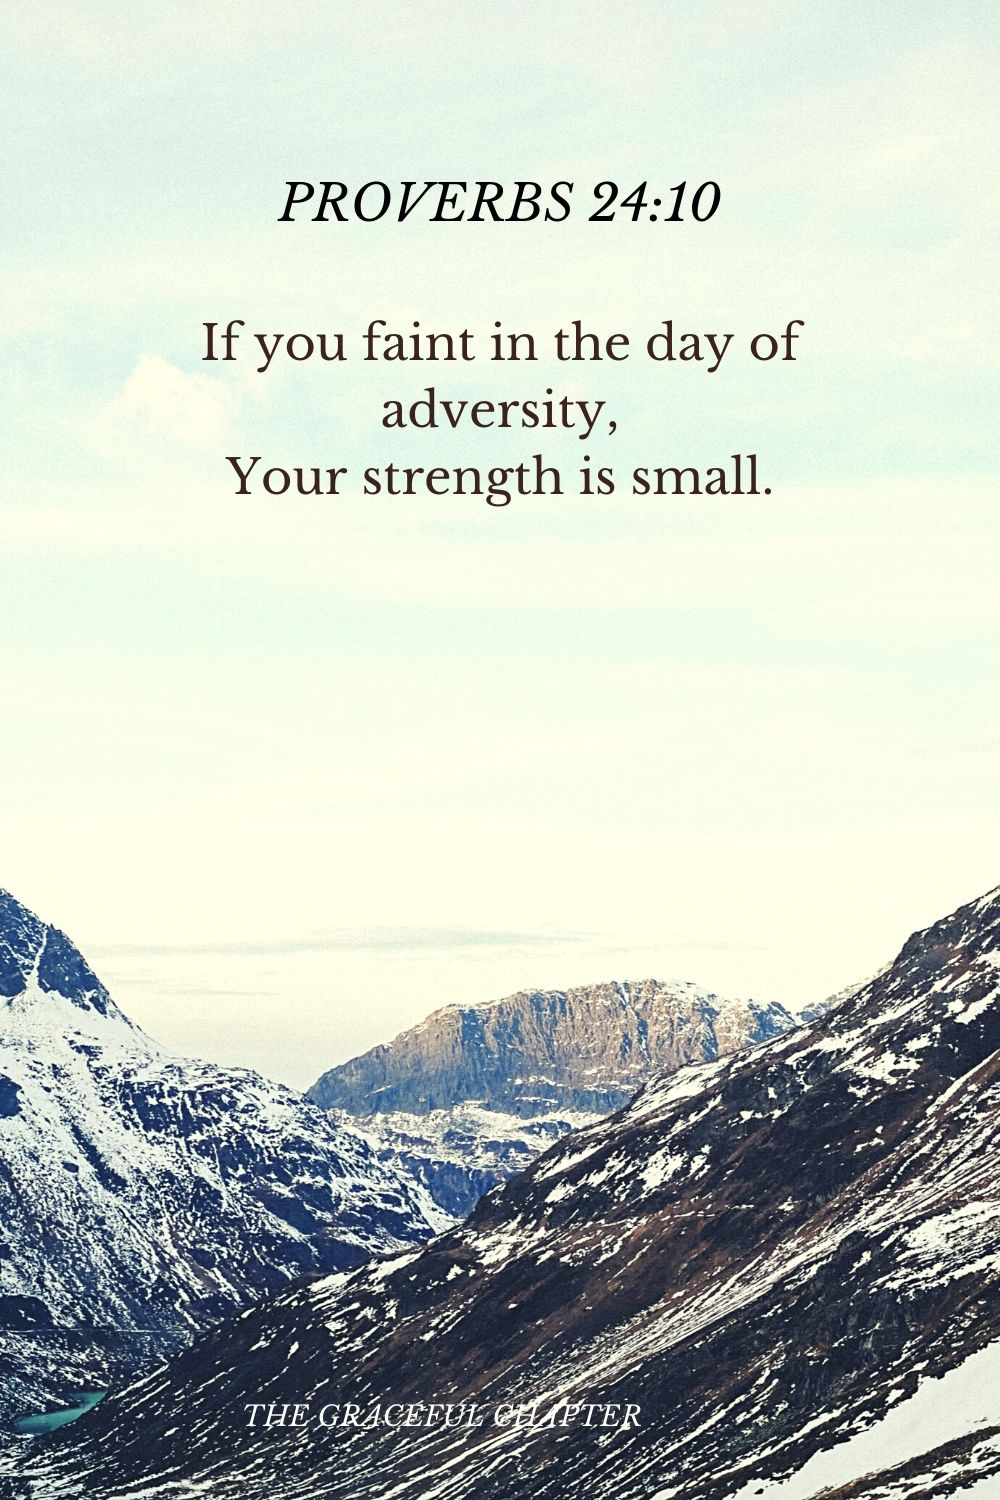 If you faint in the day of adversity, Your strength is small. Proverbs 24:10